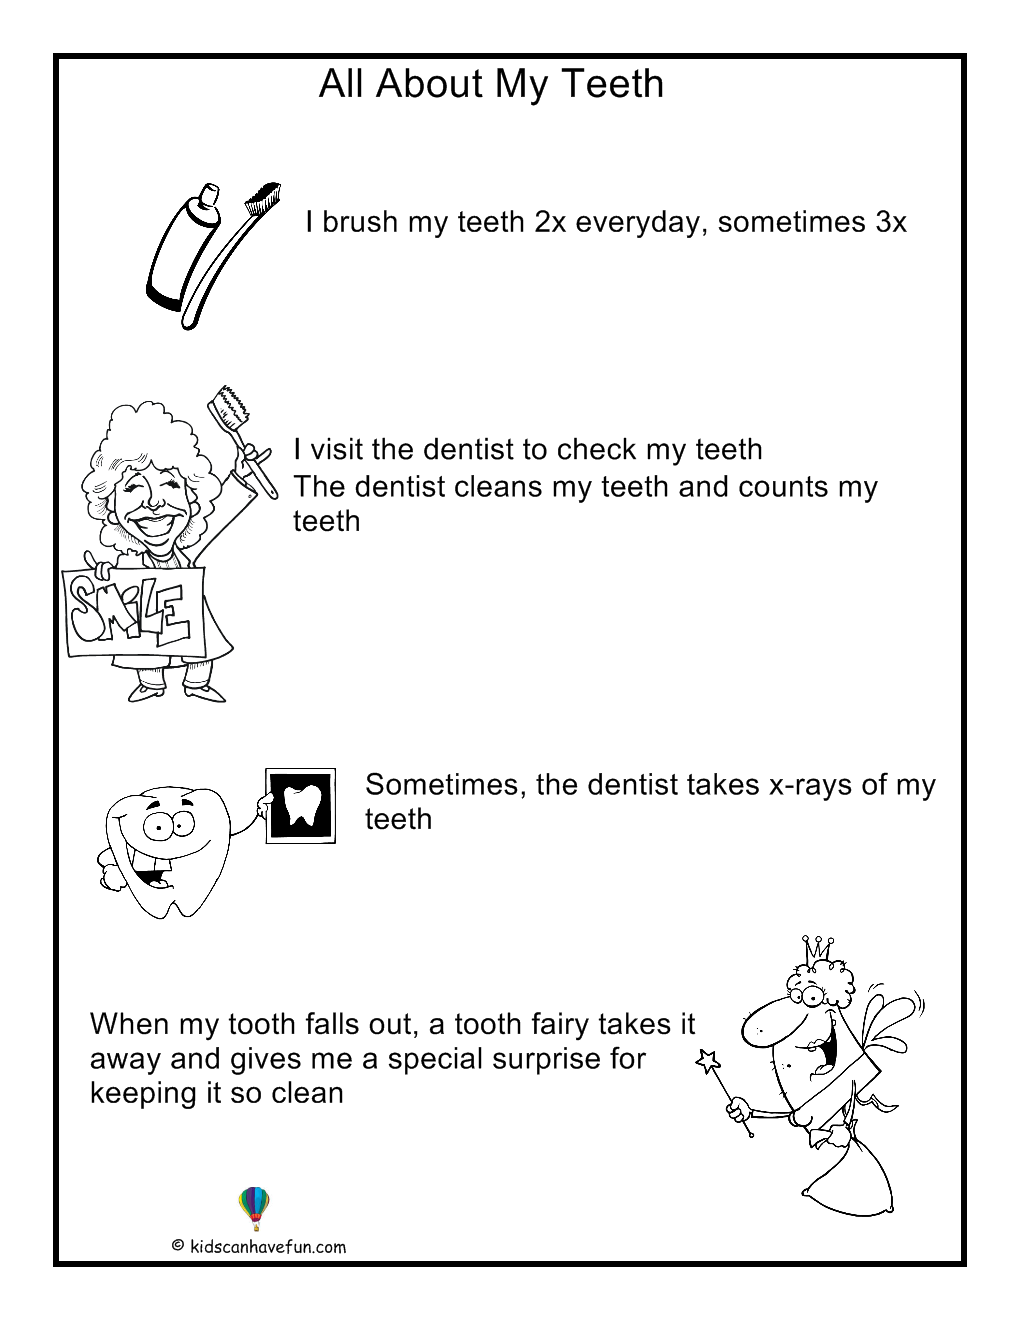 About My Teeth poster for kids | All About Me | Pinterest